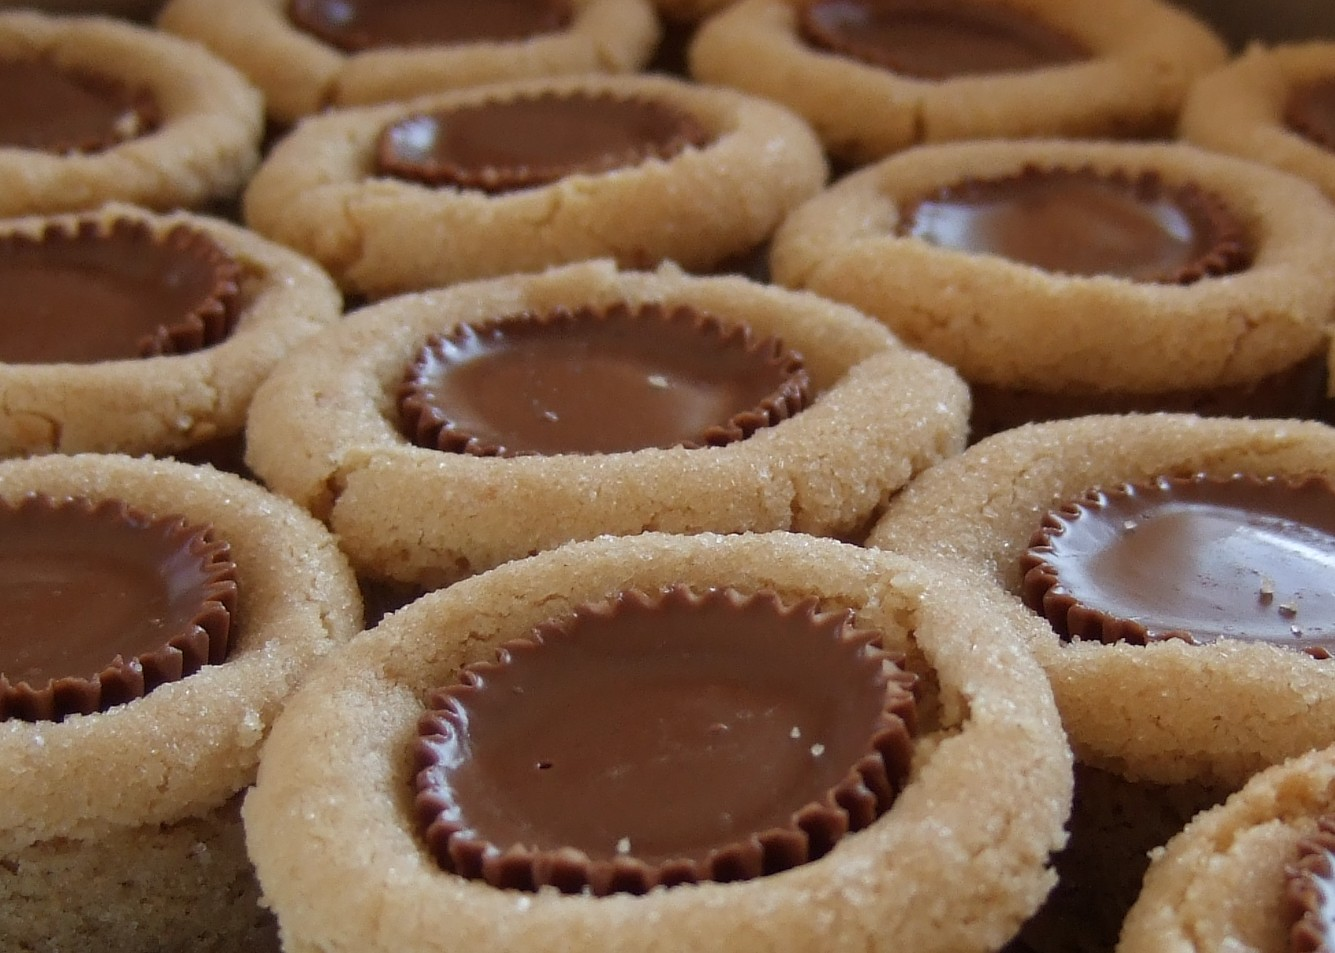 peanut butter cup is a molded chocolate candy with a peanut butter ...